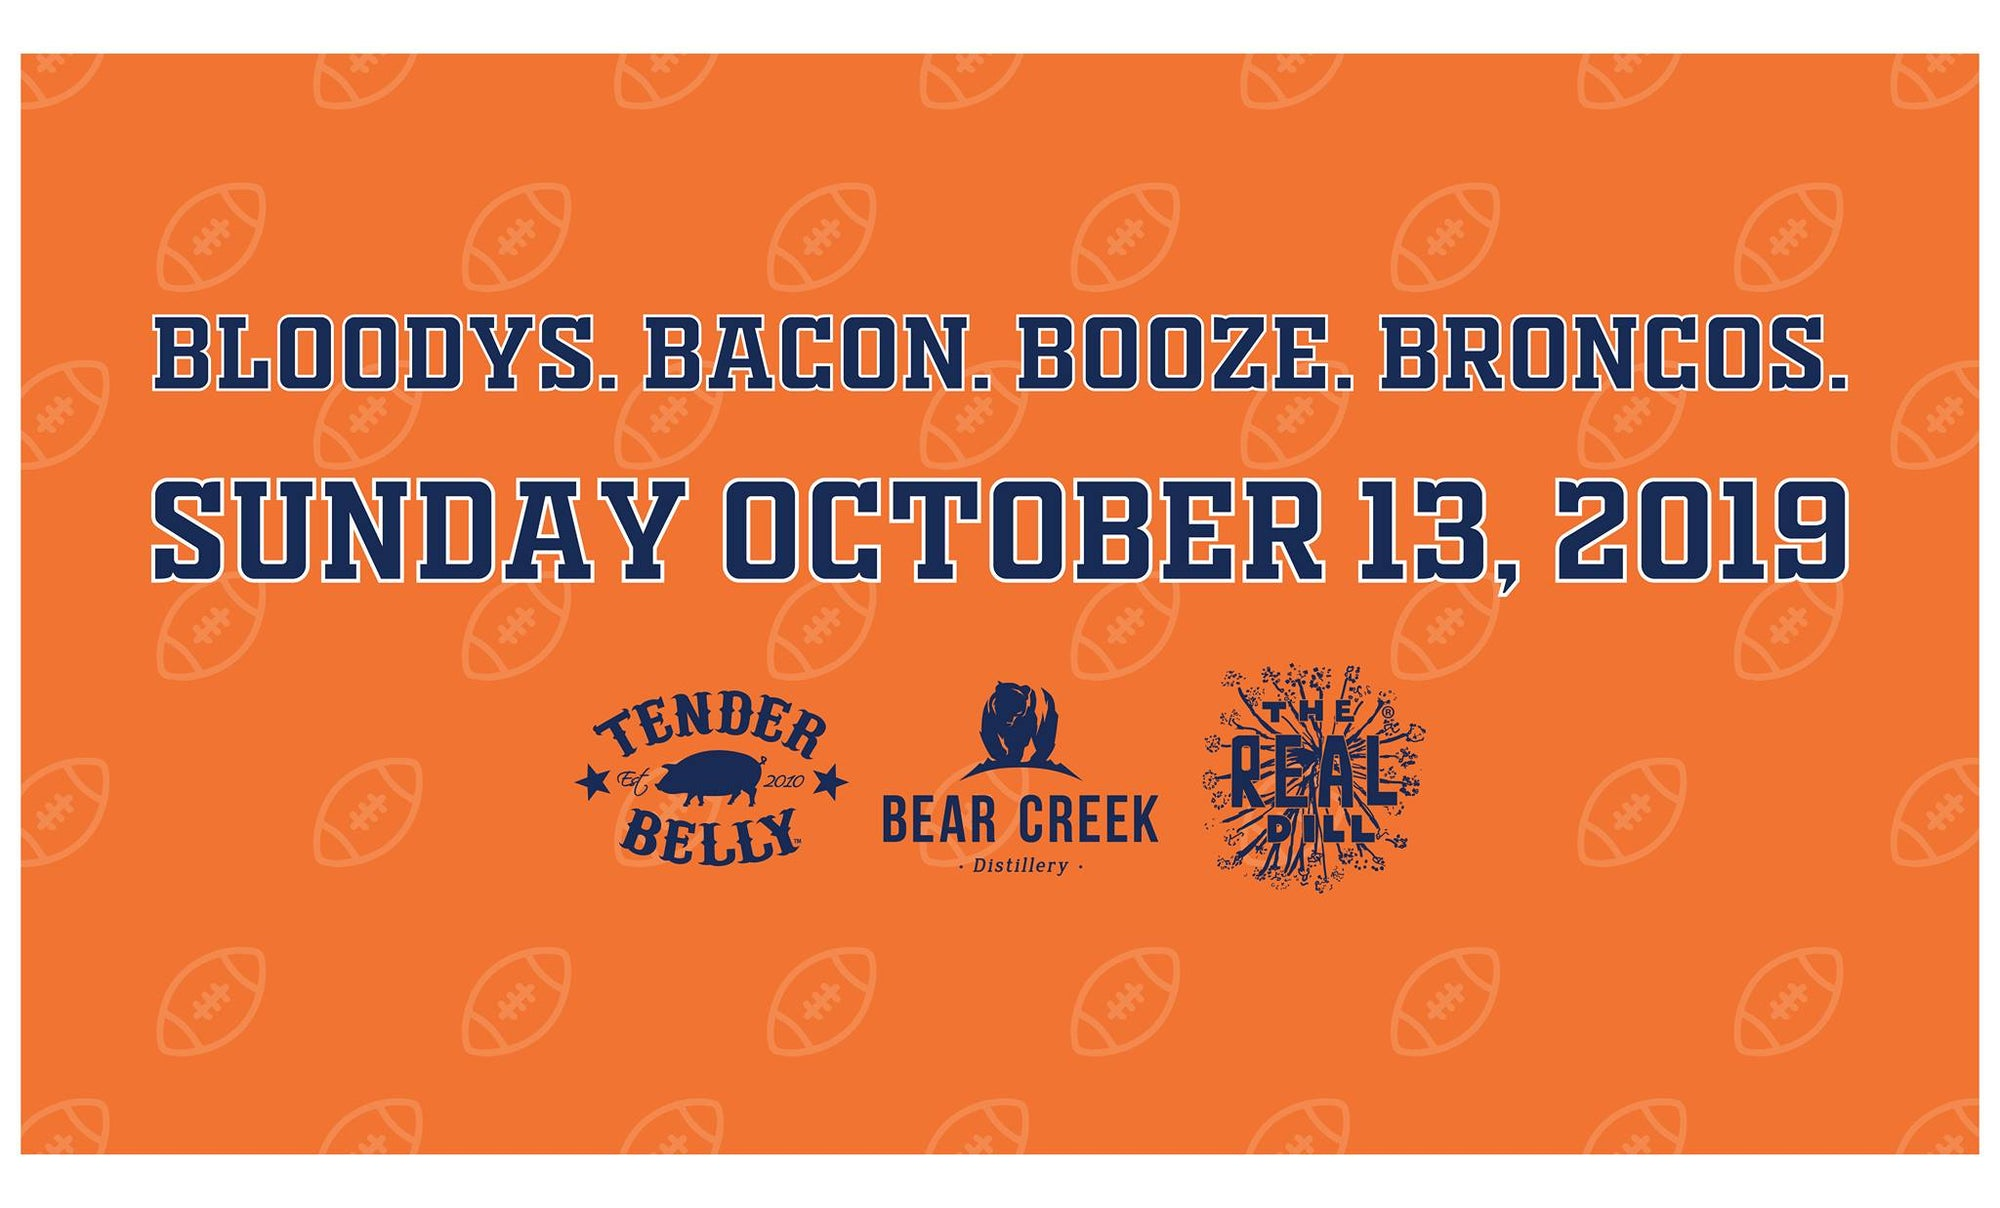 BLOODYS. BACON. BOOZE. BRONCOS.